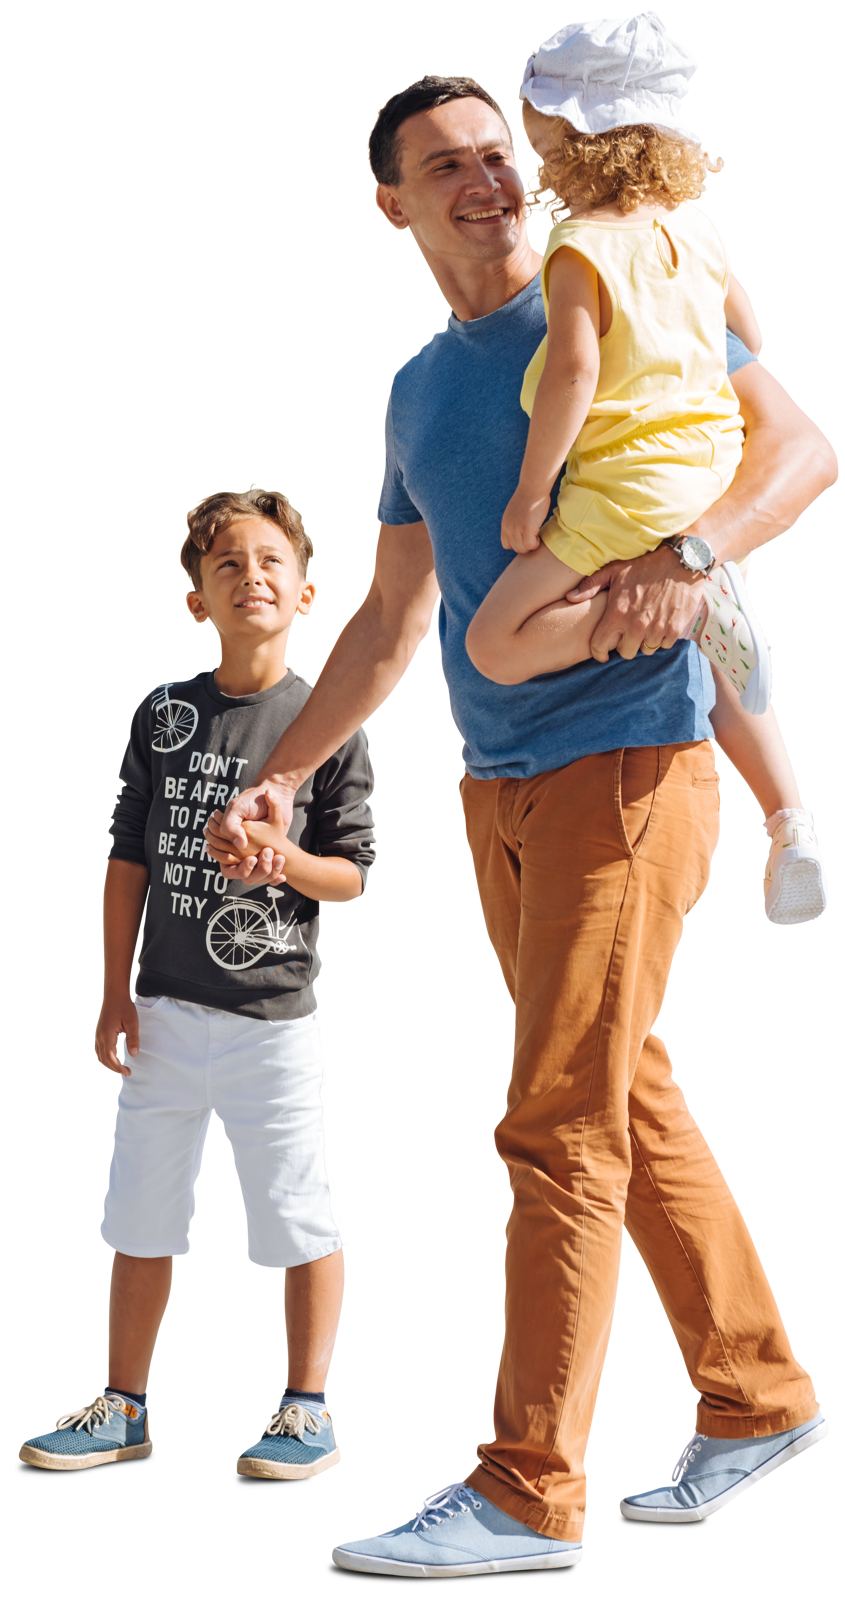 Family WALKING PNG Images Free Download